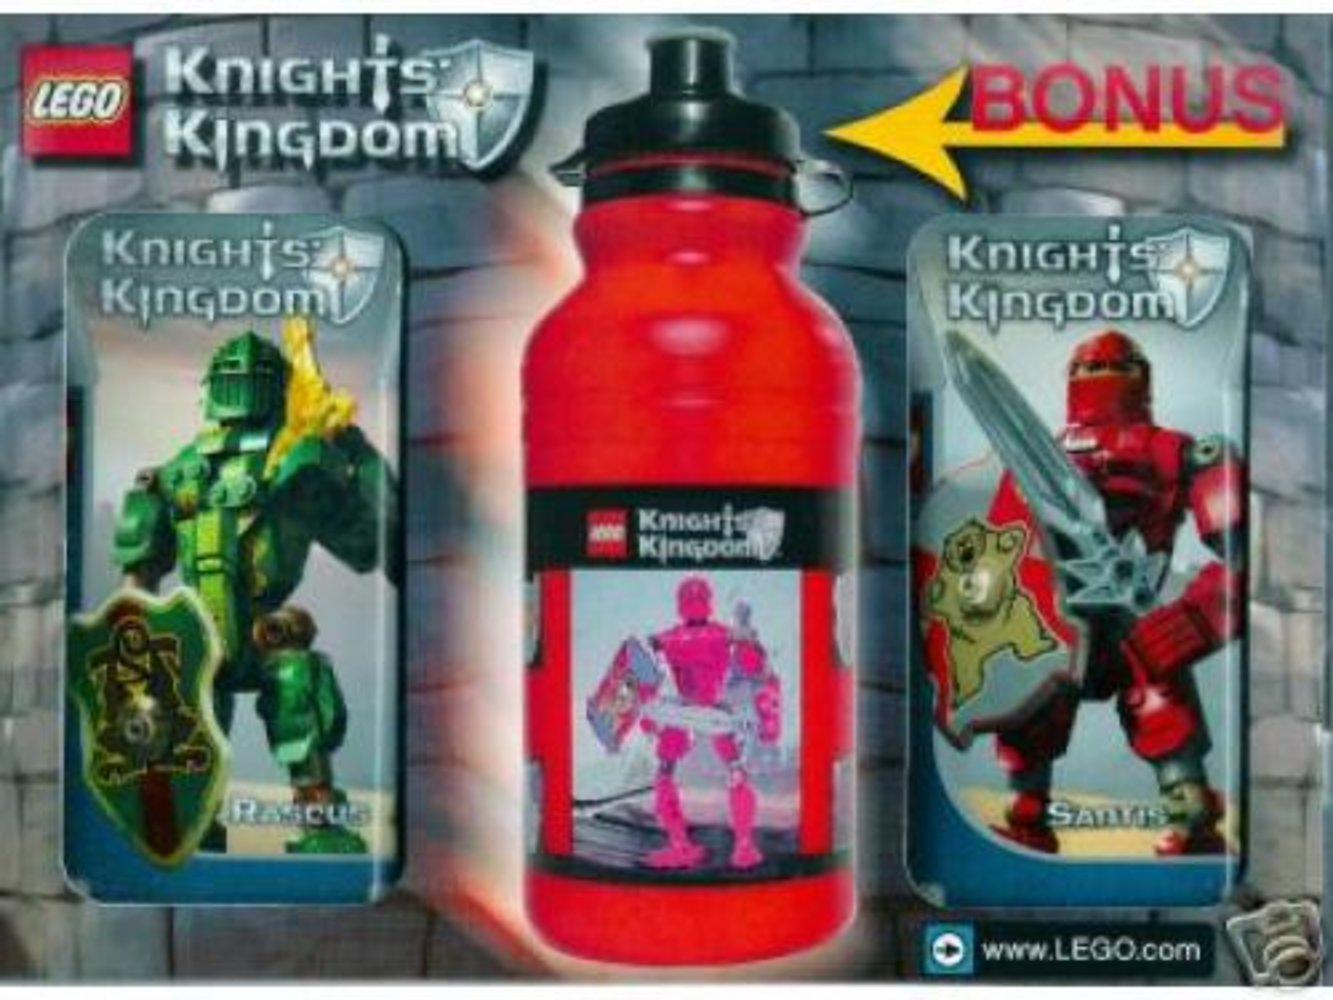 Knights' Kingdom Value Pack 3 (with bonus water bottle)